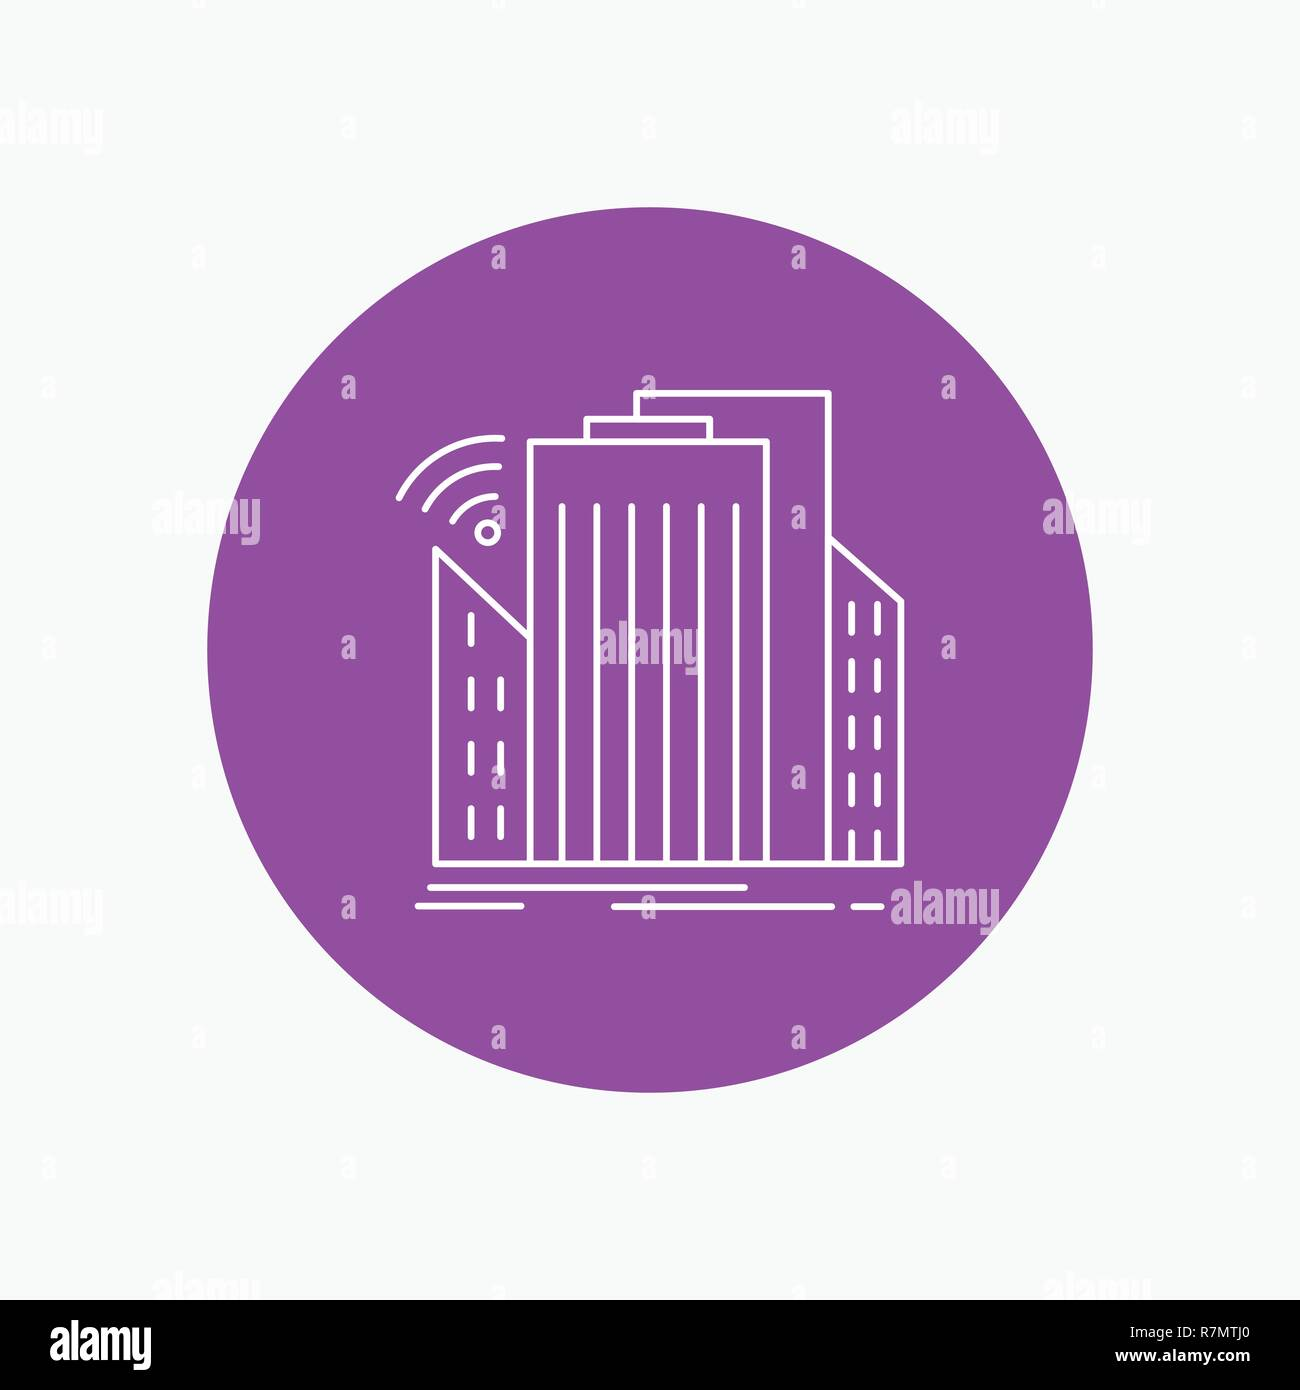 Buildings, city, sensor, smart, urban White Line Icon in Circle background. vector icon illustration - Stock Vector